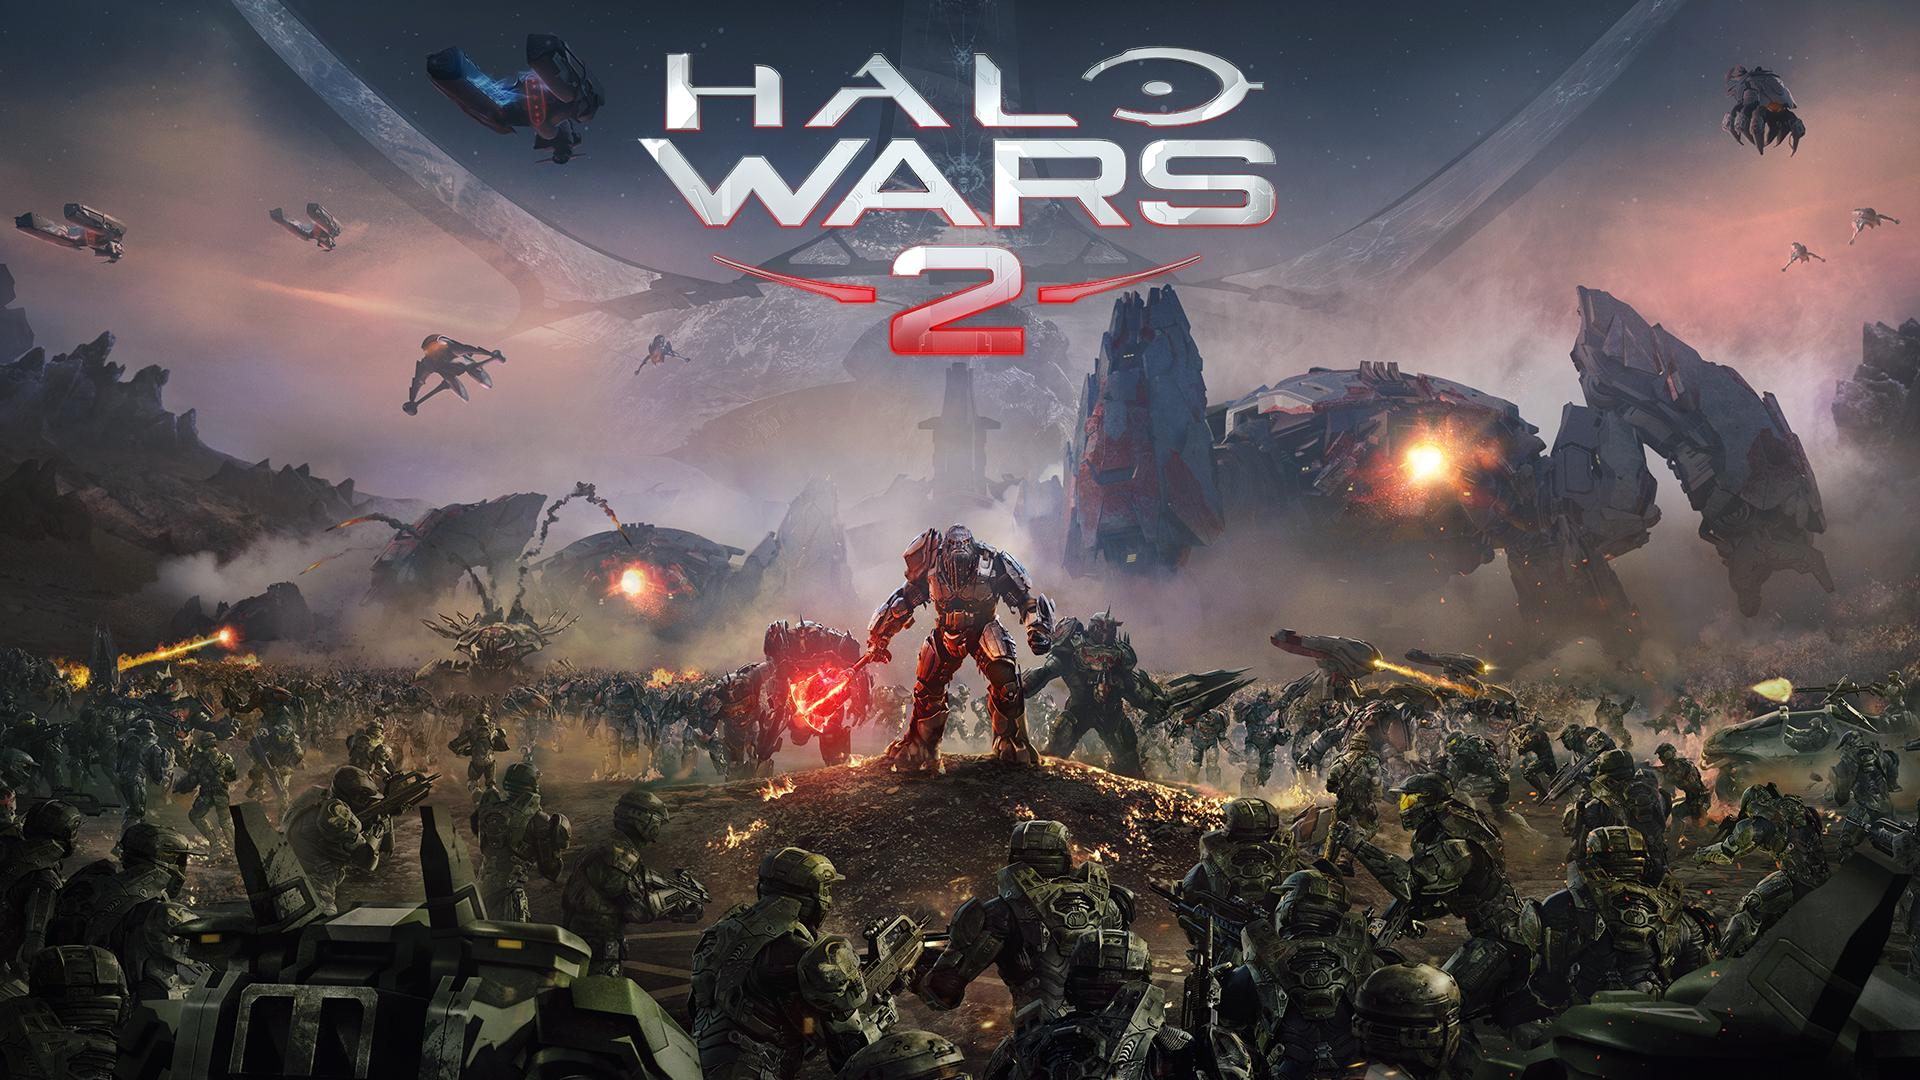 Halo Wars 2's next update prepares the game for Xbox One X at full 4K 1